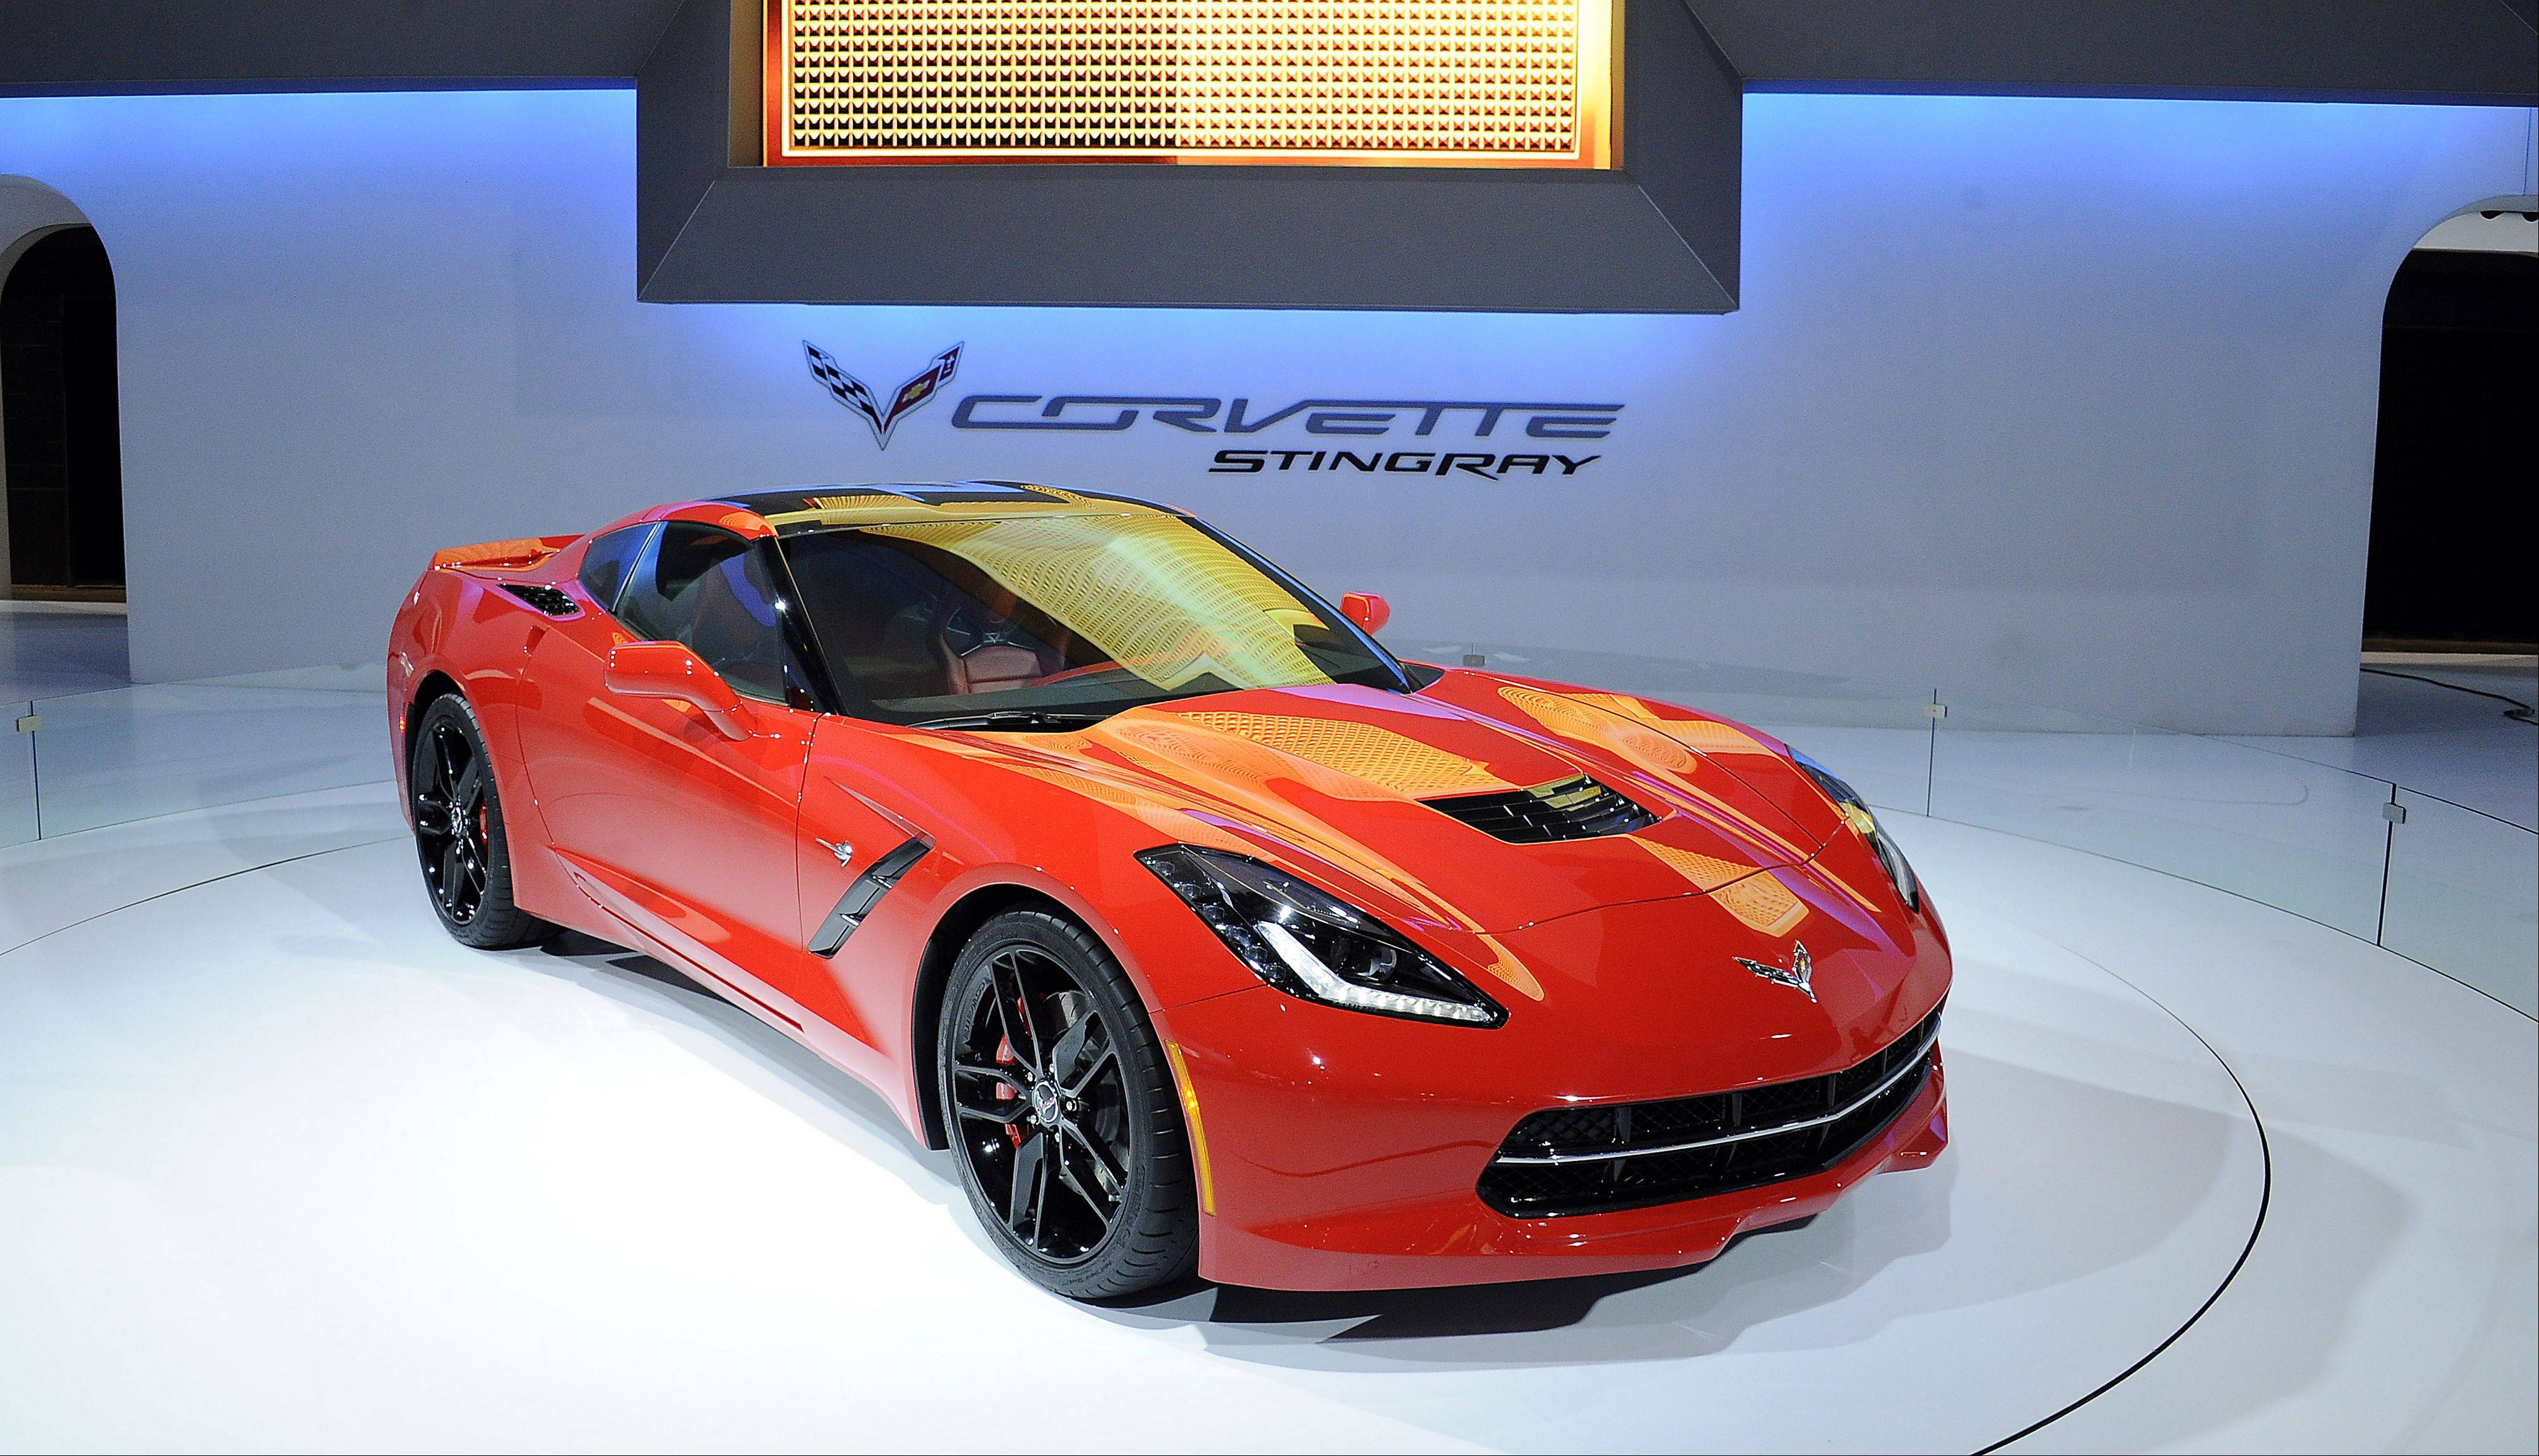 The Chevrolet 2014 Corvette Stingray.